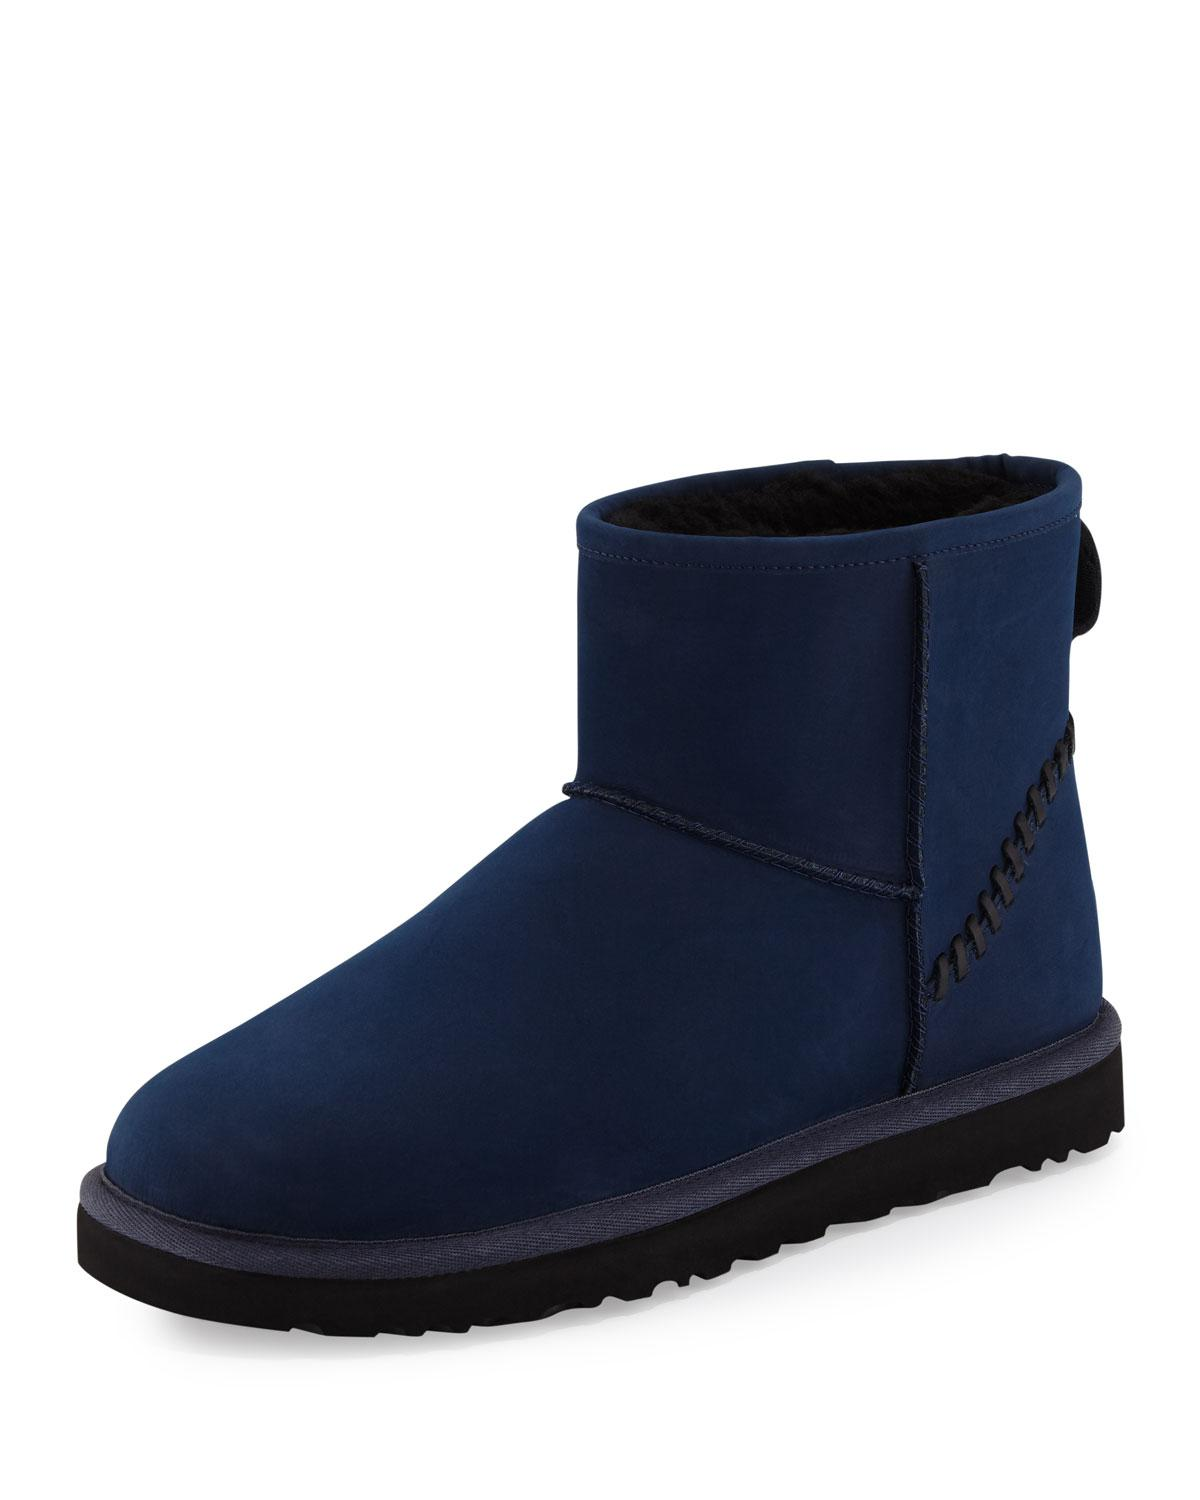 blue male uggs